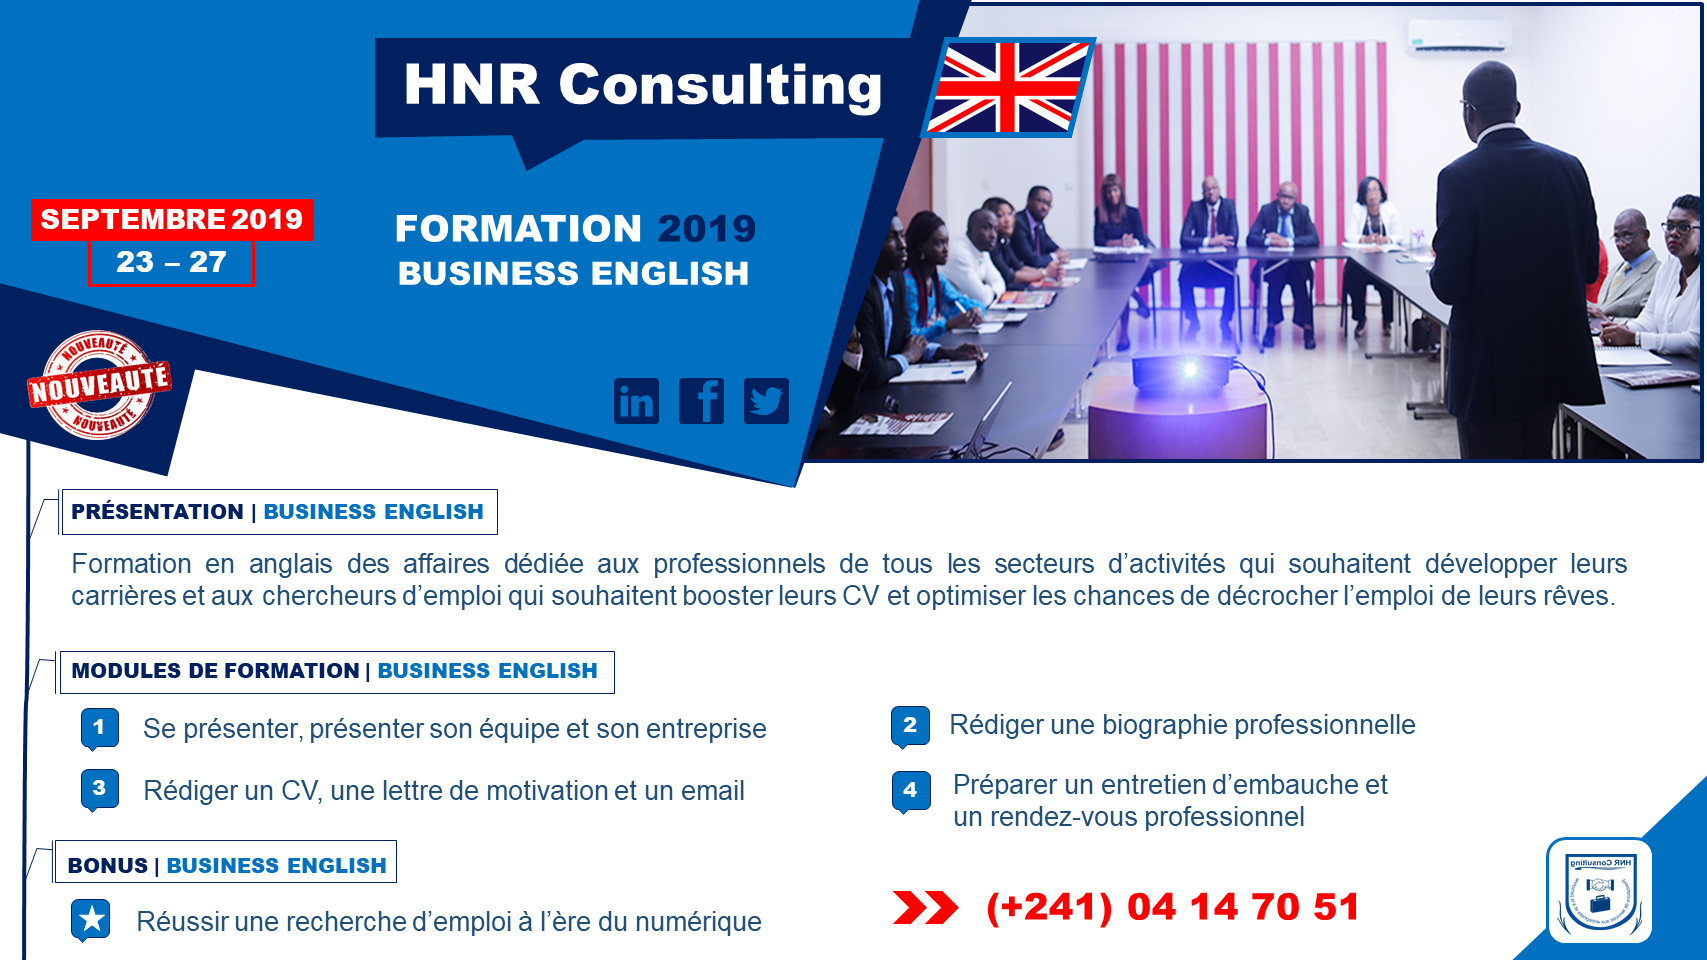 Formation 2019 en business English